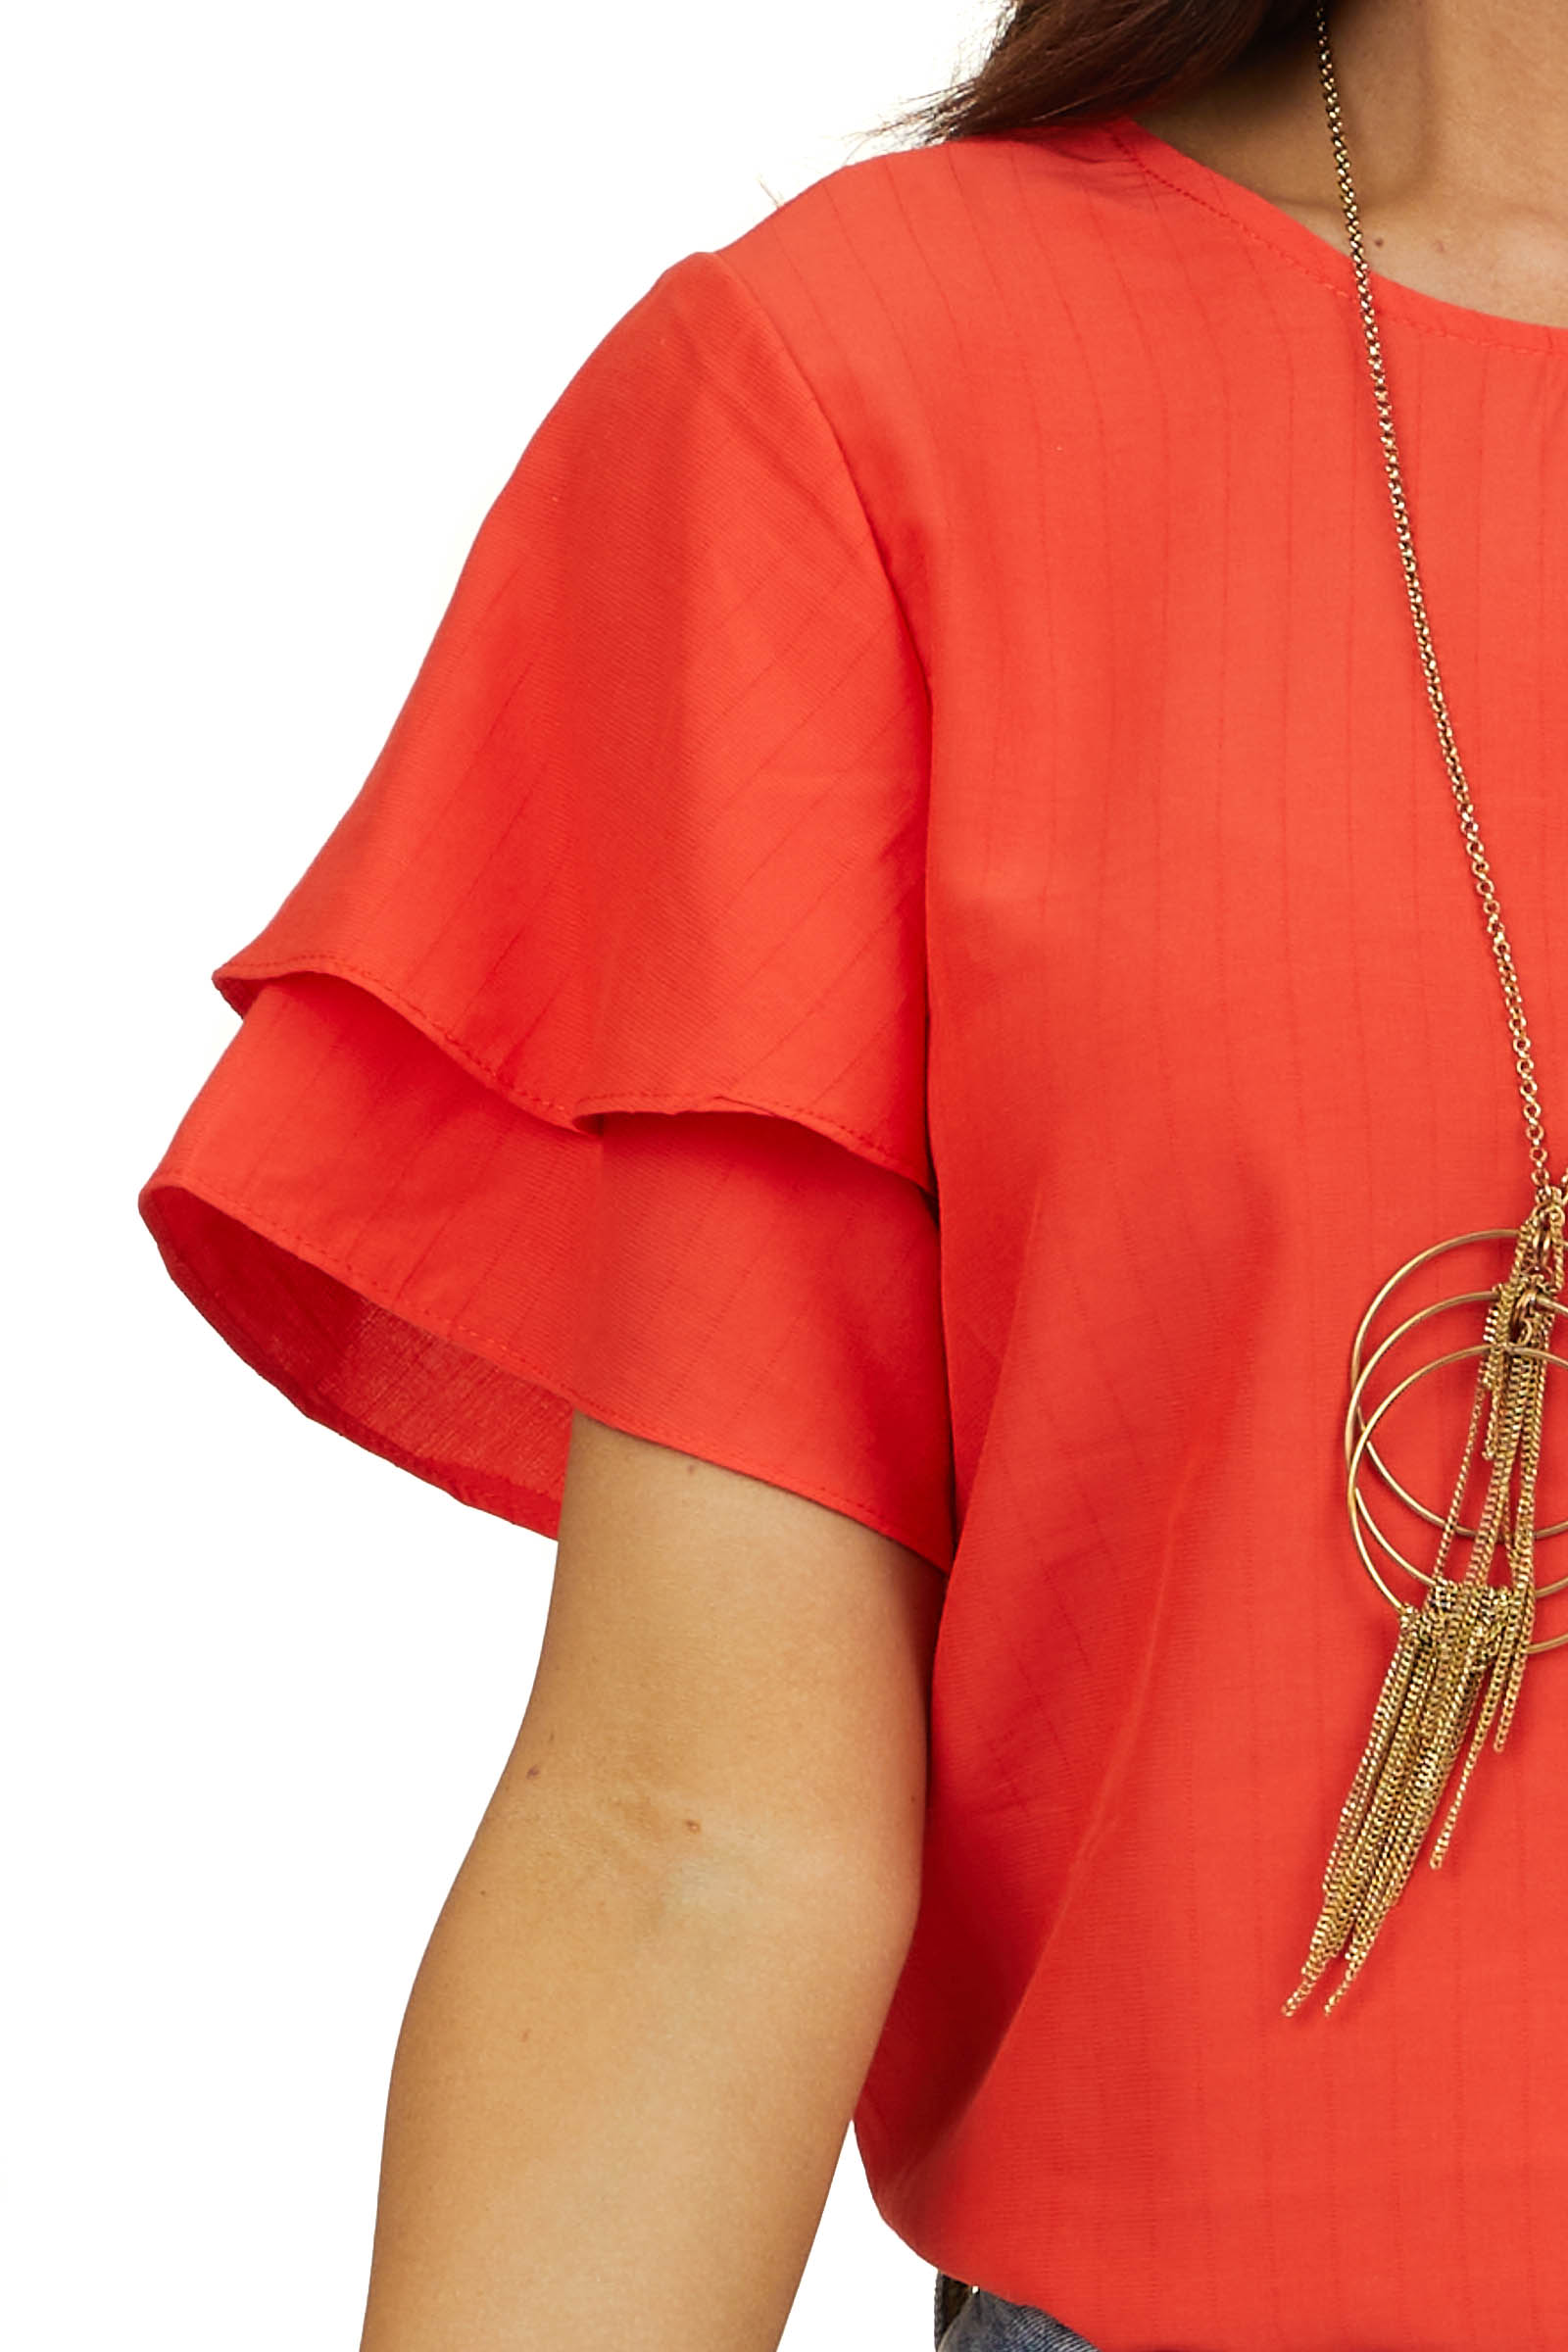 Tomato Red Short Sleeve Blouse with Textured Stripes